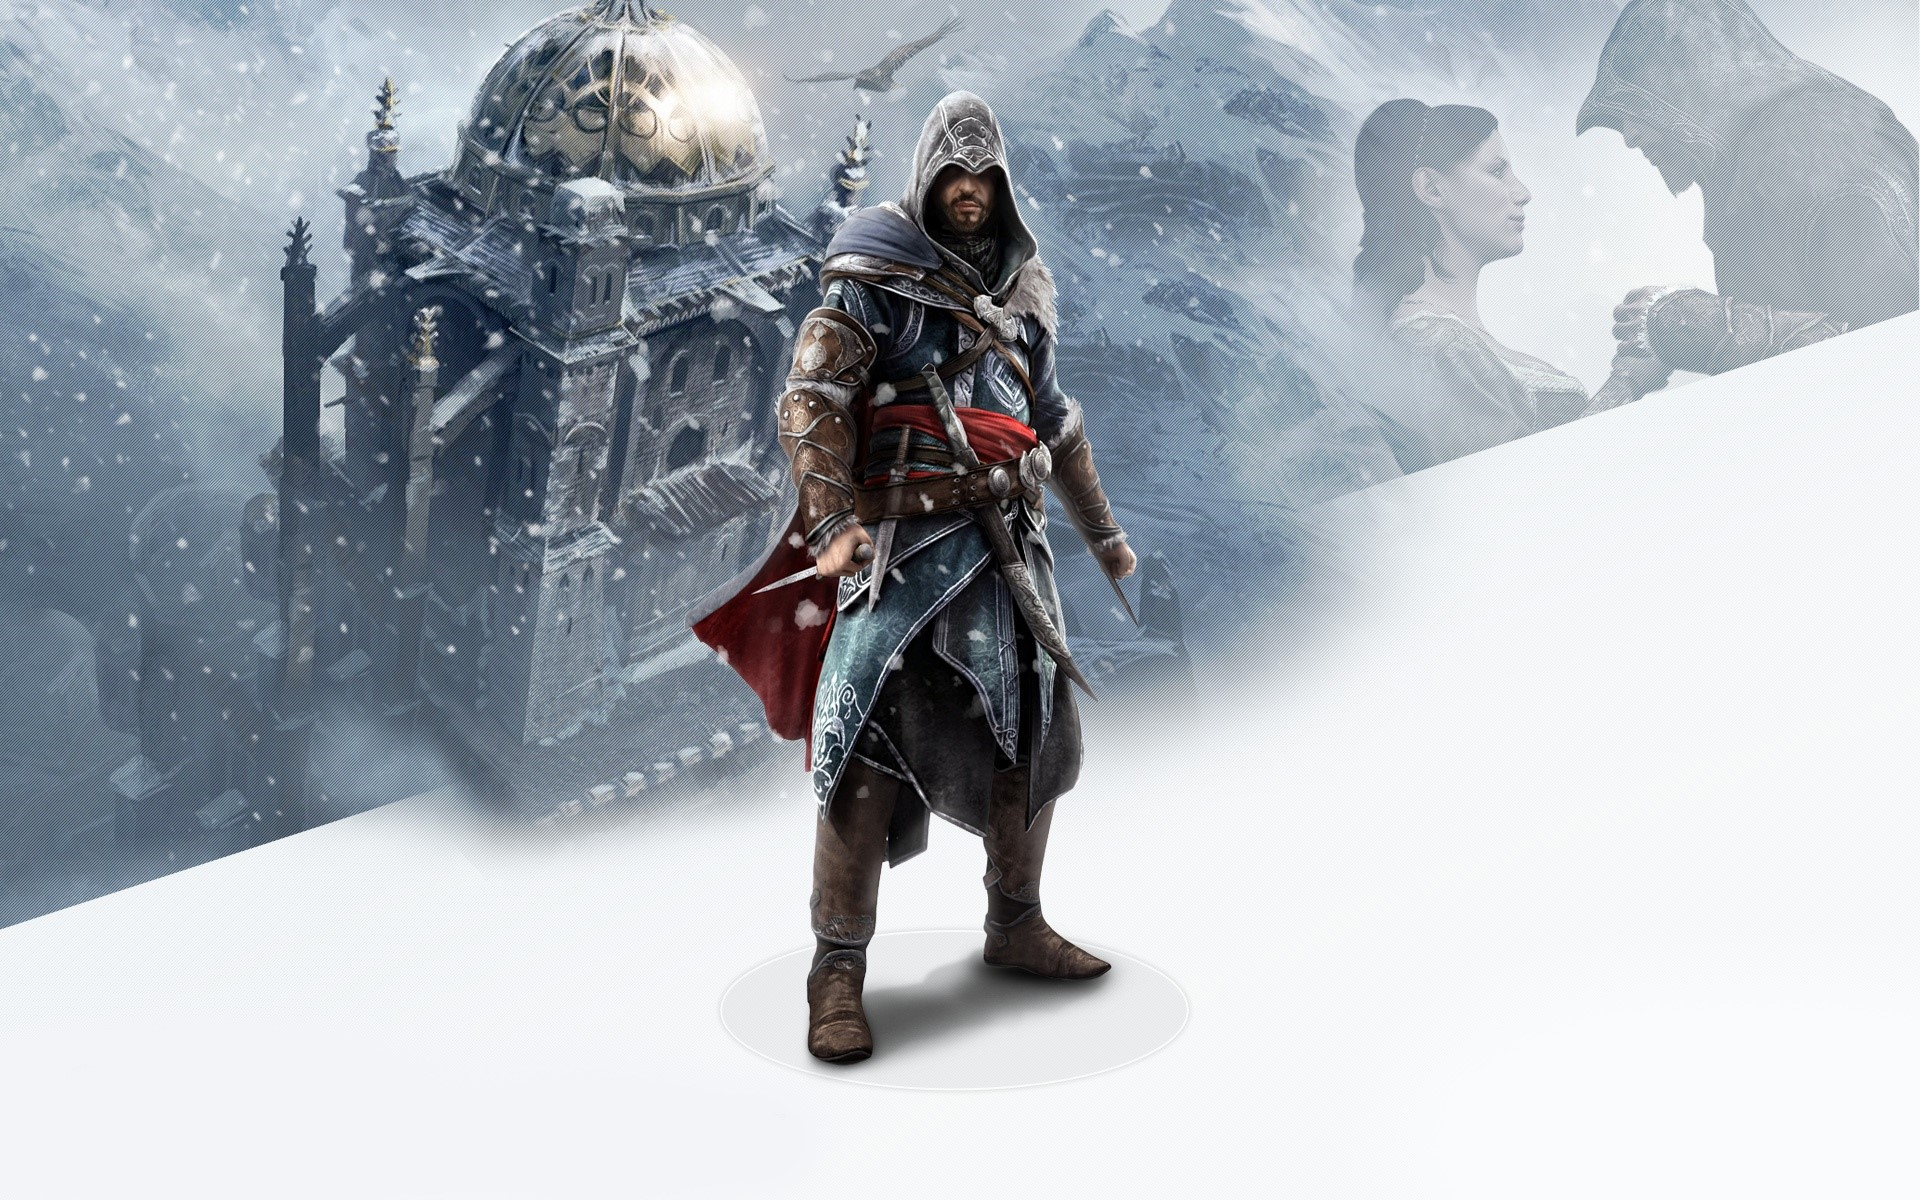 Fondos de pantalla Ezio de Assassins Creed revelations